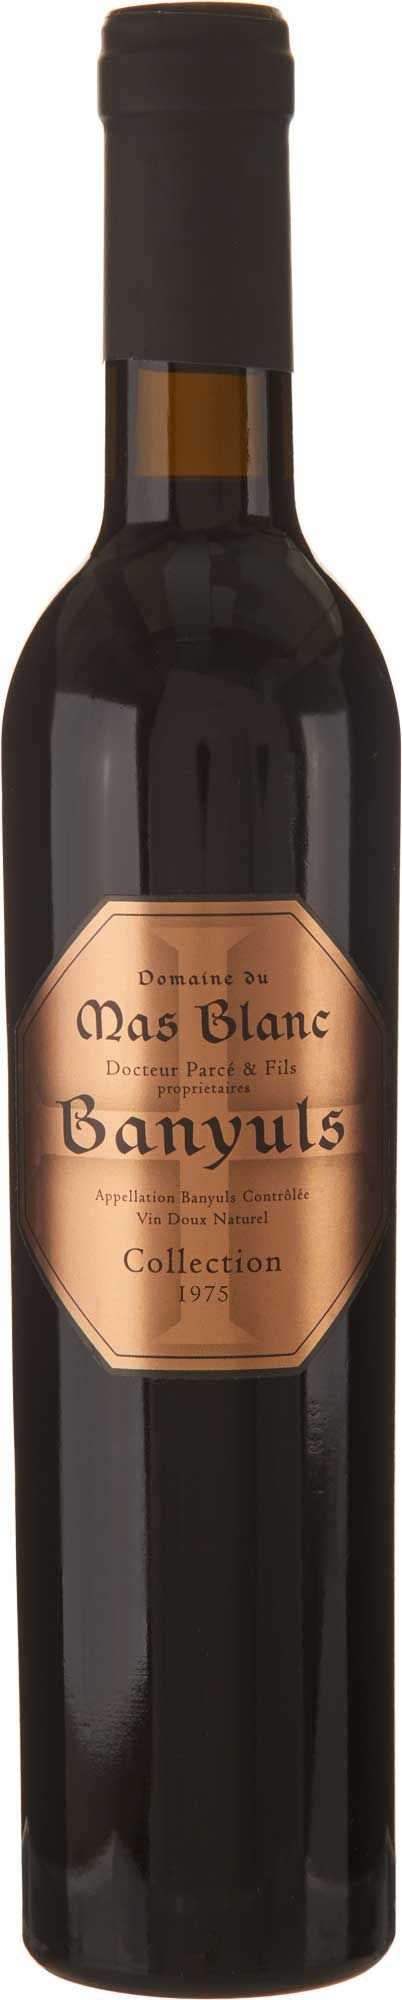 Domaine du Mas Blanc Banyuls Collection 1975